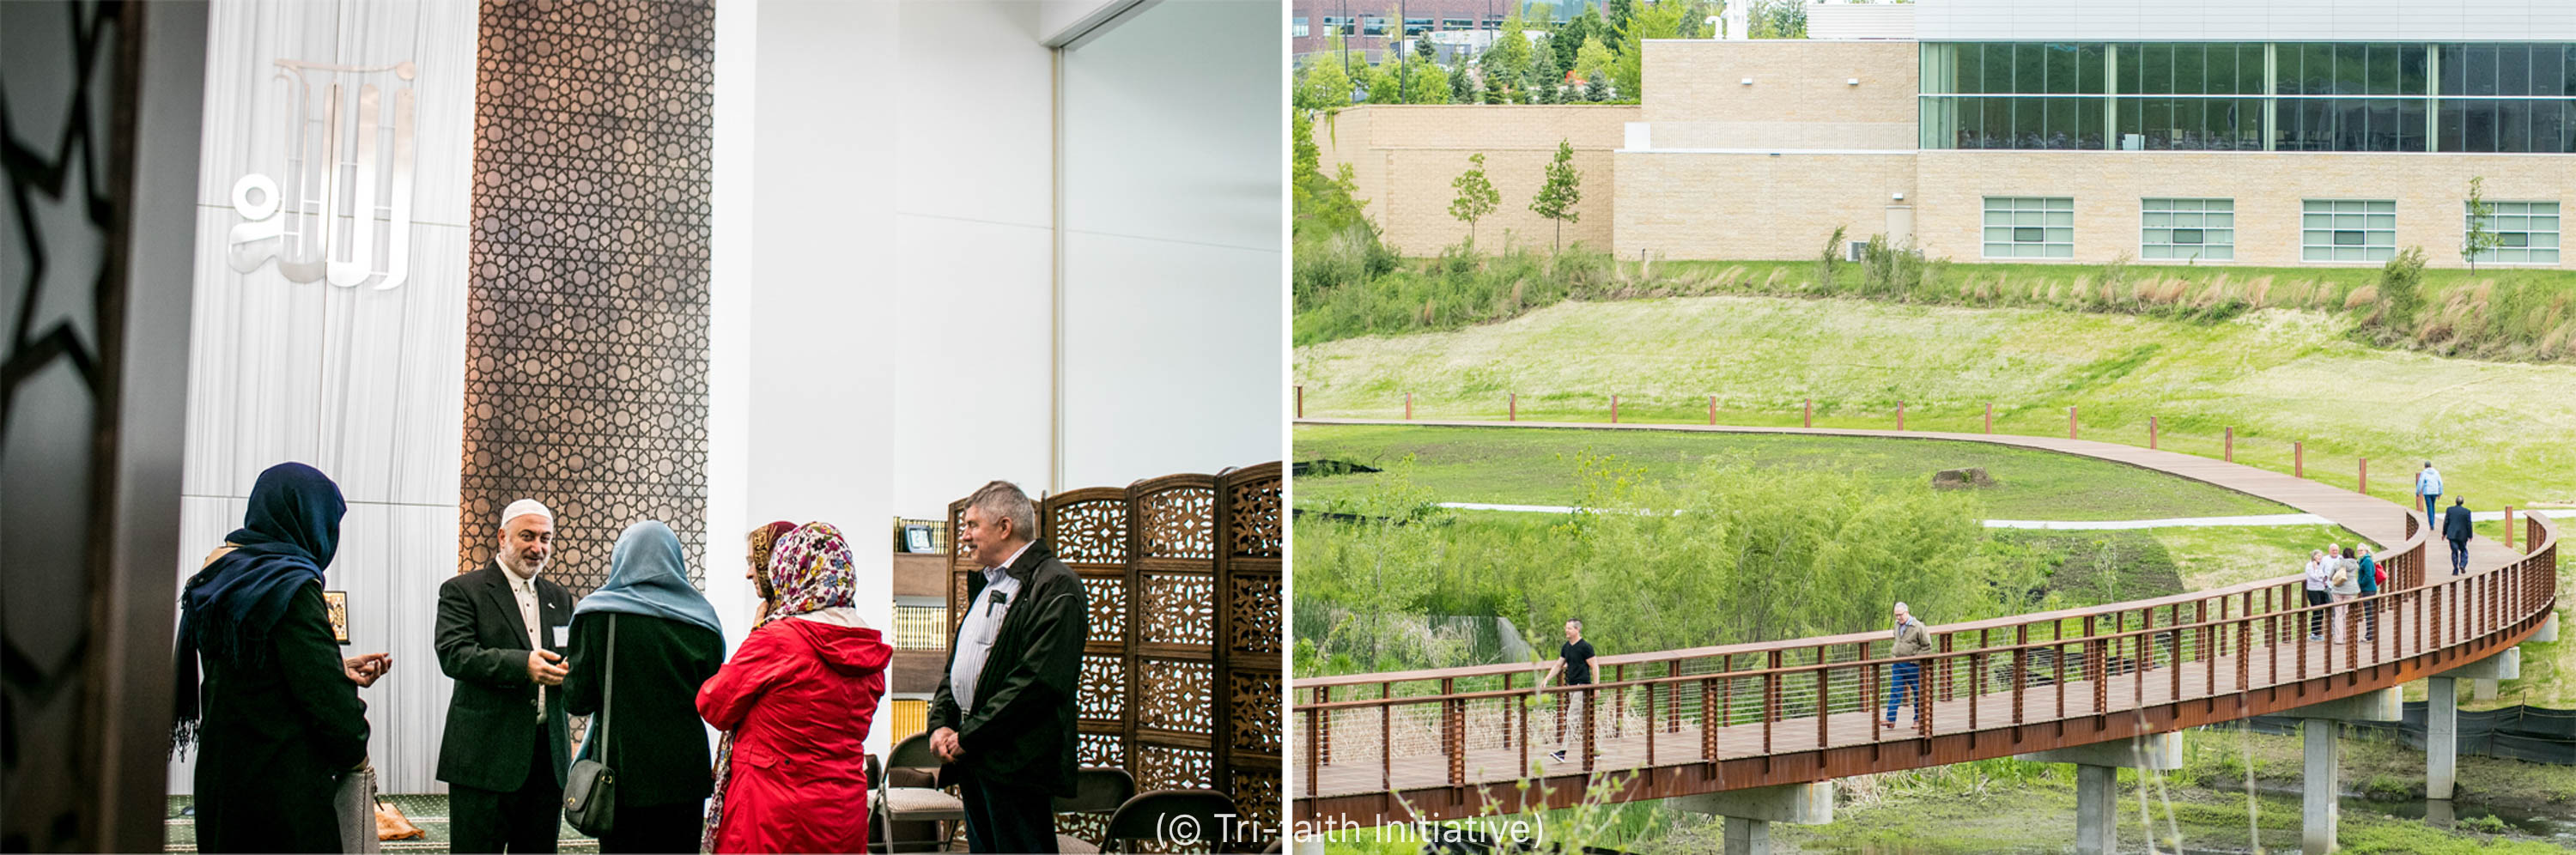 Left: Inside the American Muslim Institute, Imam Jamal Daoudi speaks to visitors. Right: Abraham's Bridge links the Tri-Faith Center houses of worship. Coincidentally, the bridge spans a stream called Hell Creek. (© Tri-Faith Initiative)